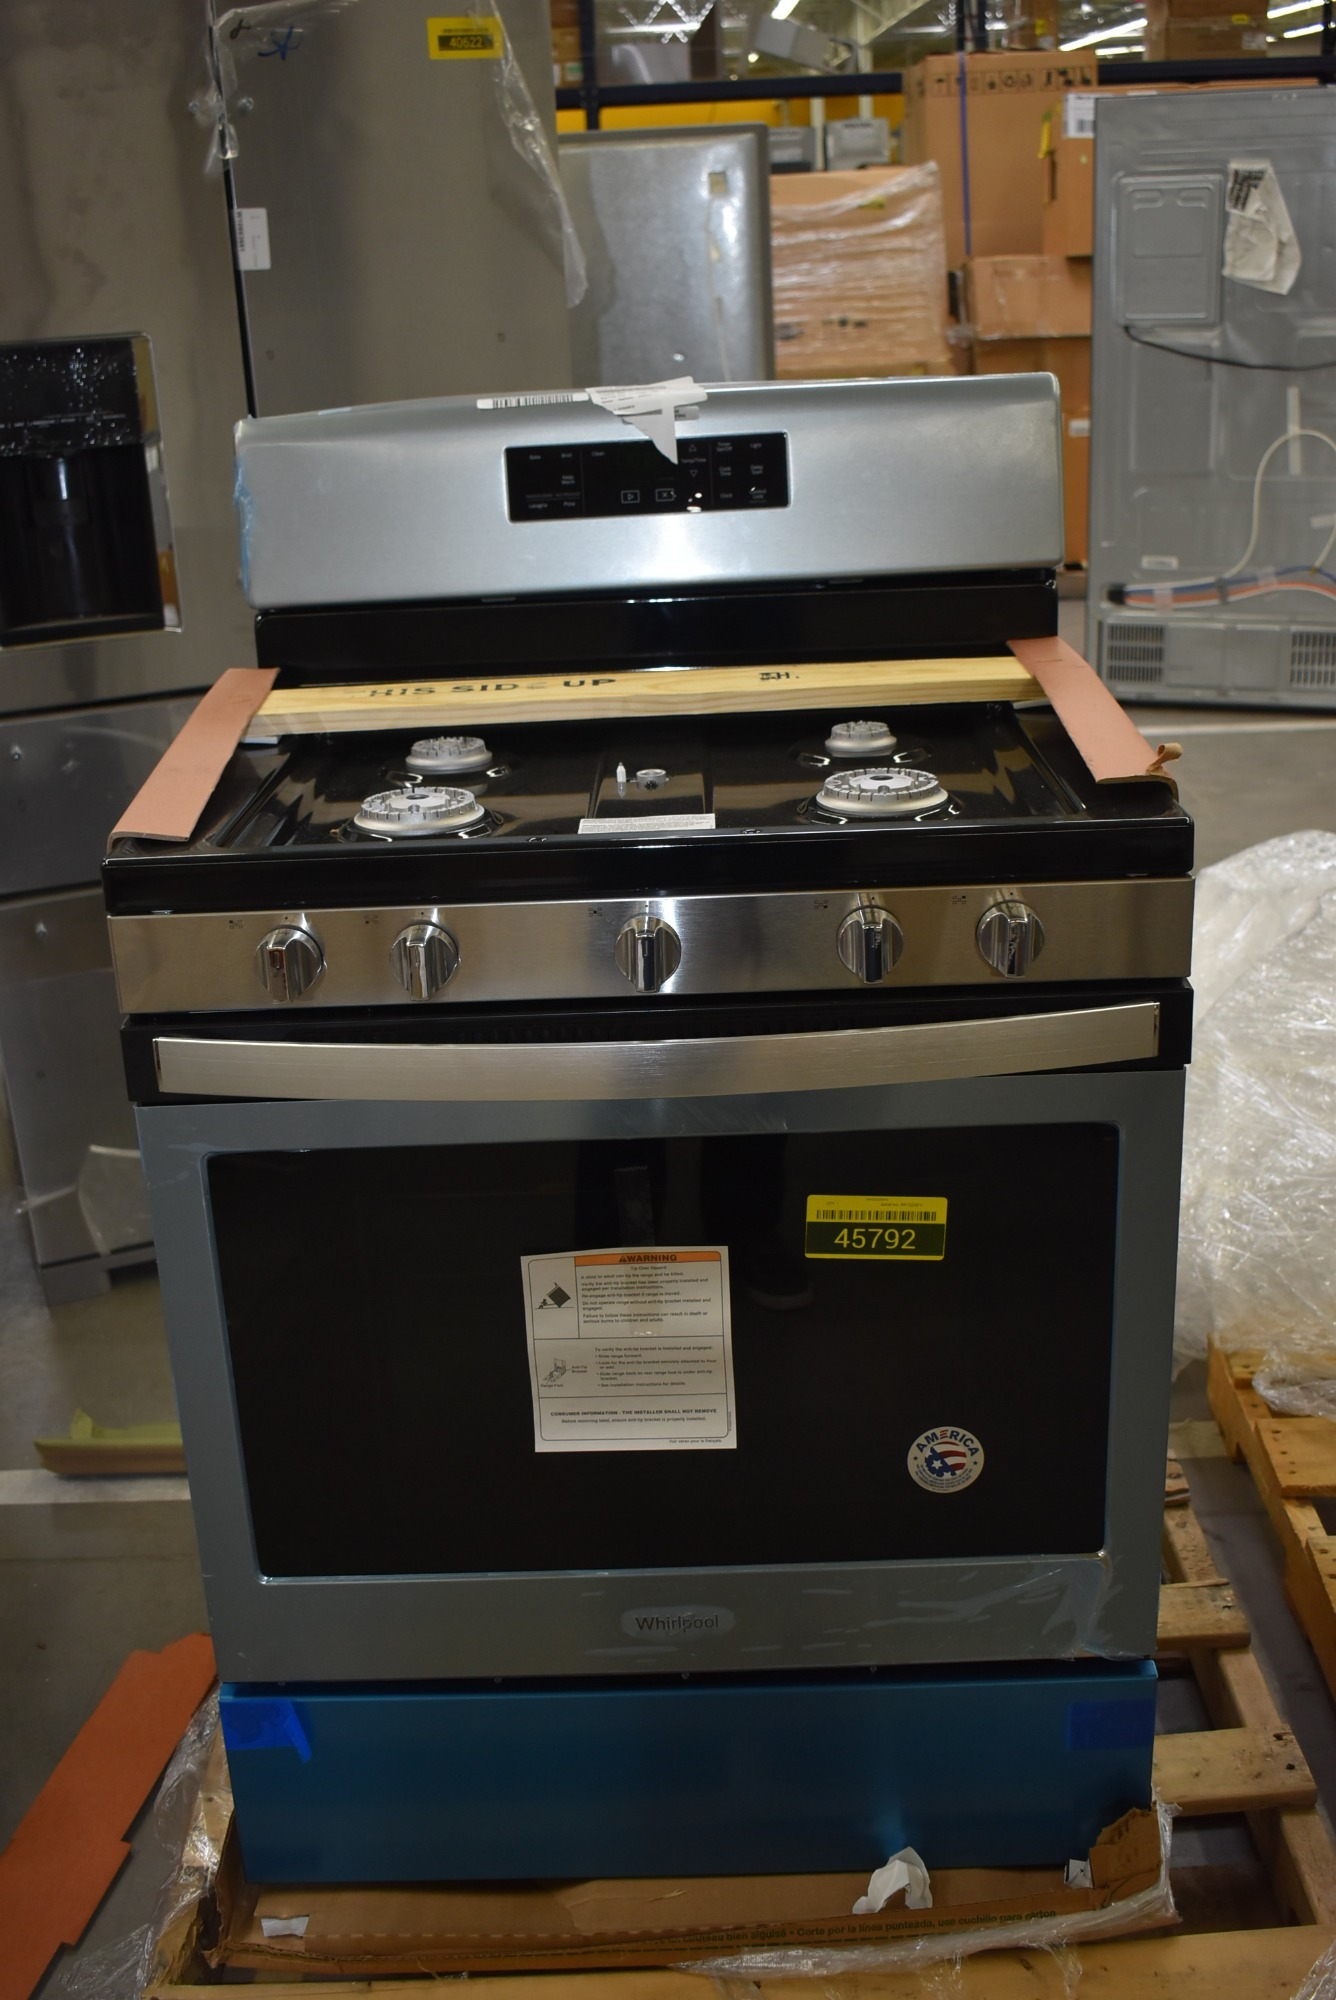 Whirlpool WFG525S0HS 30